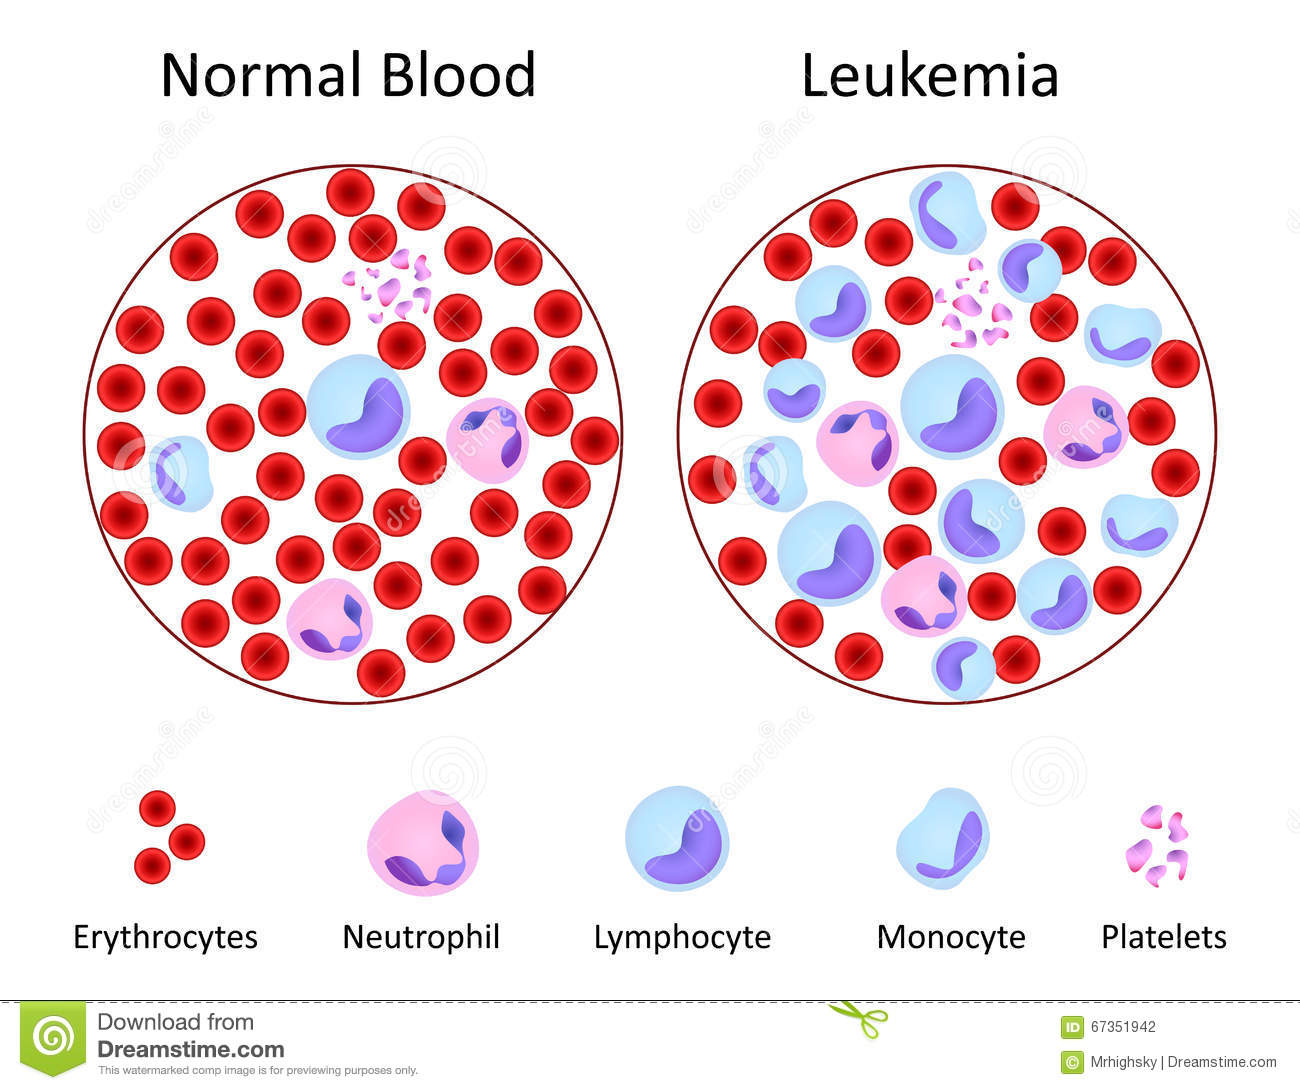 Normal Vs Leukemia Blood Stock Vector - Image: 67351942